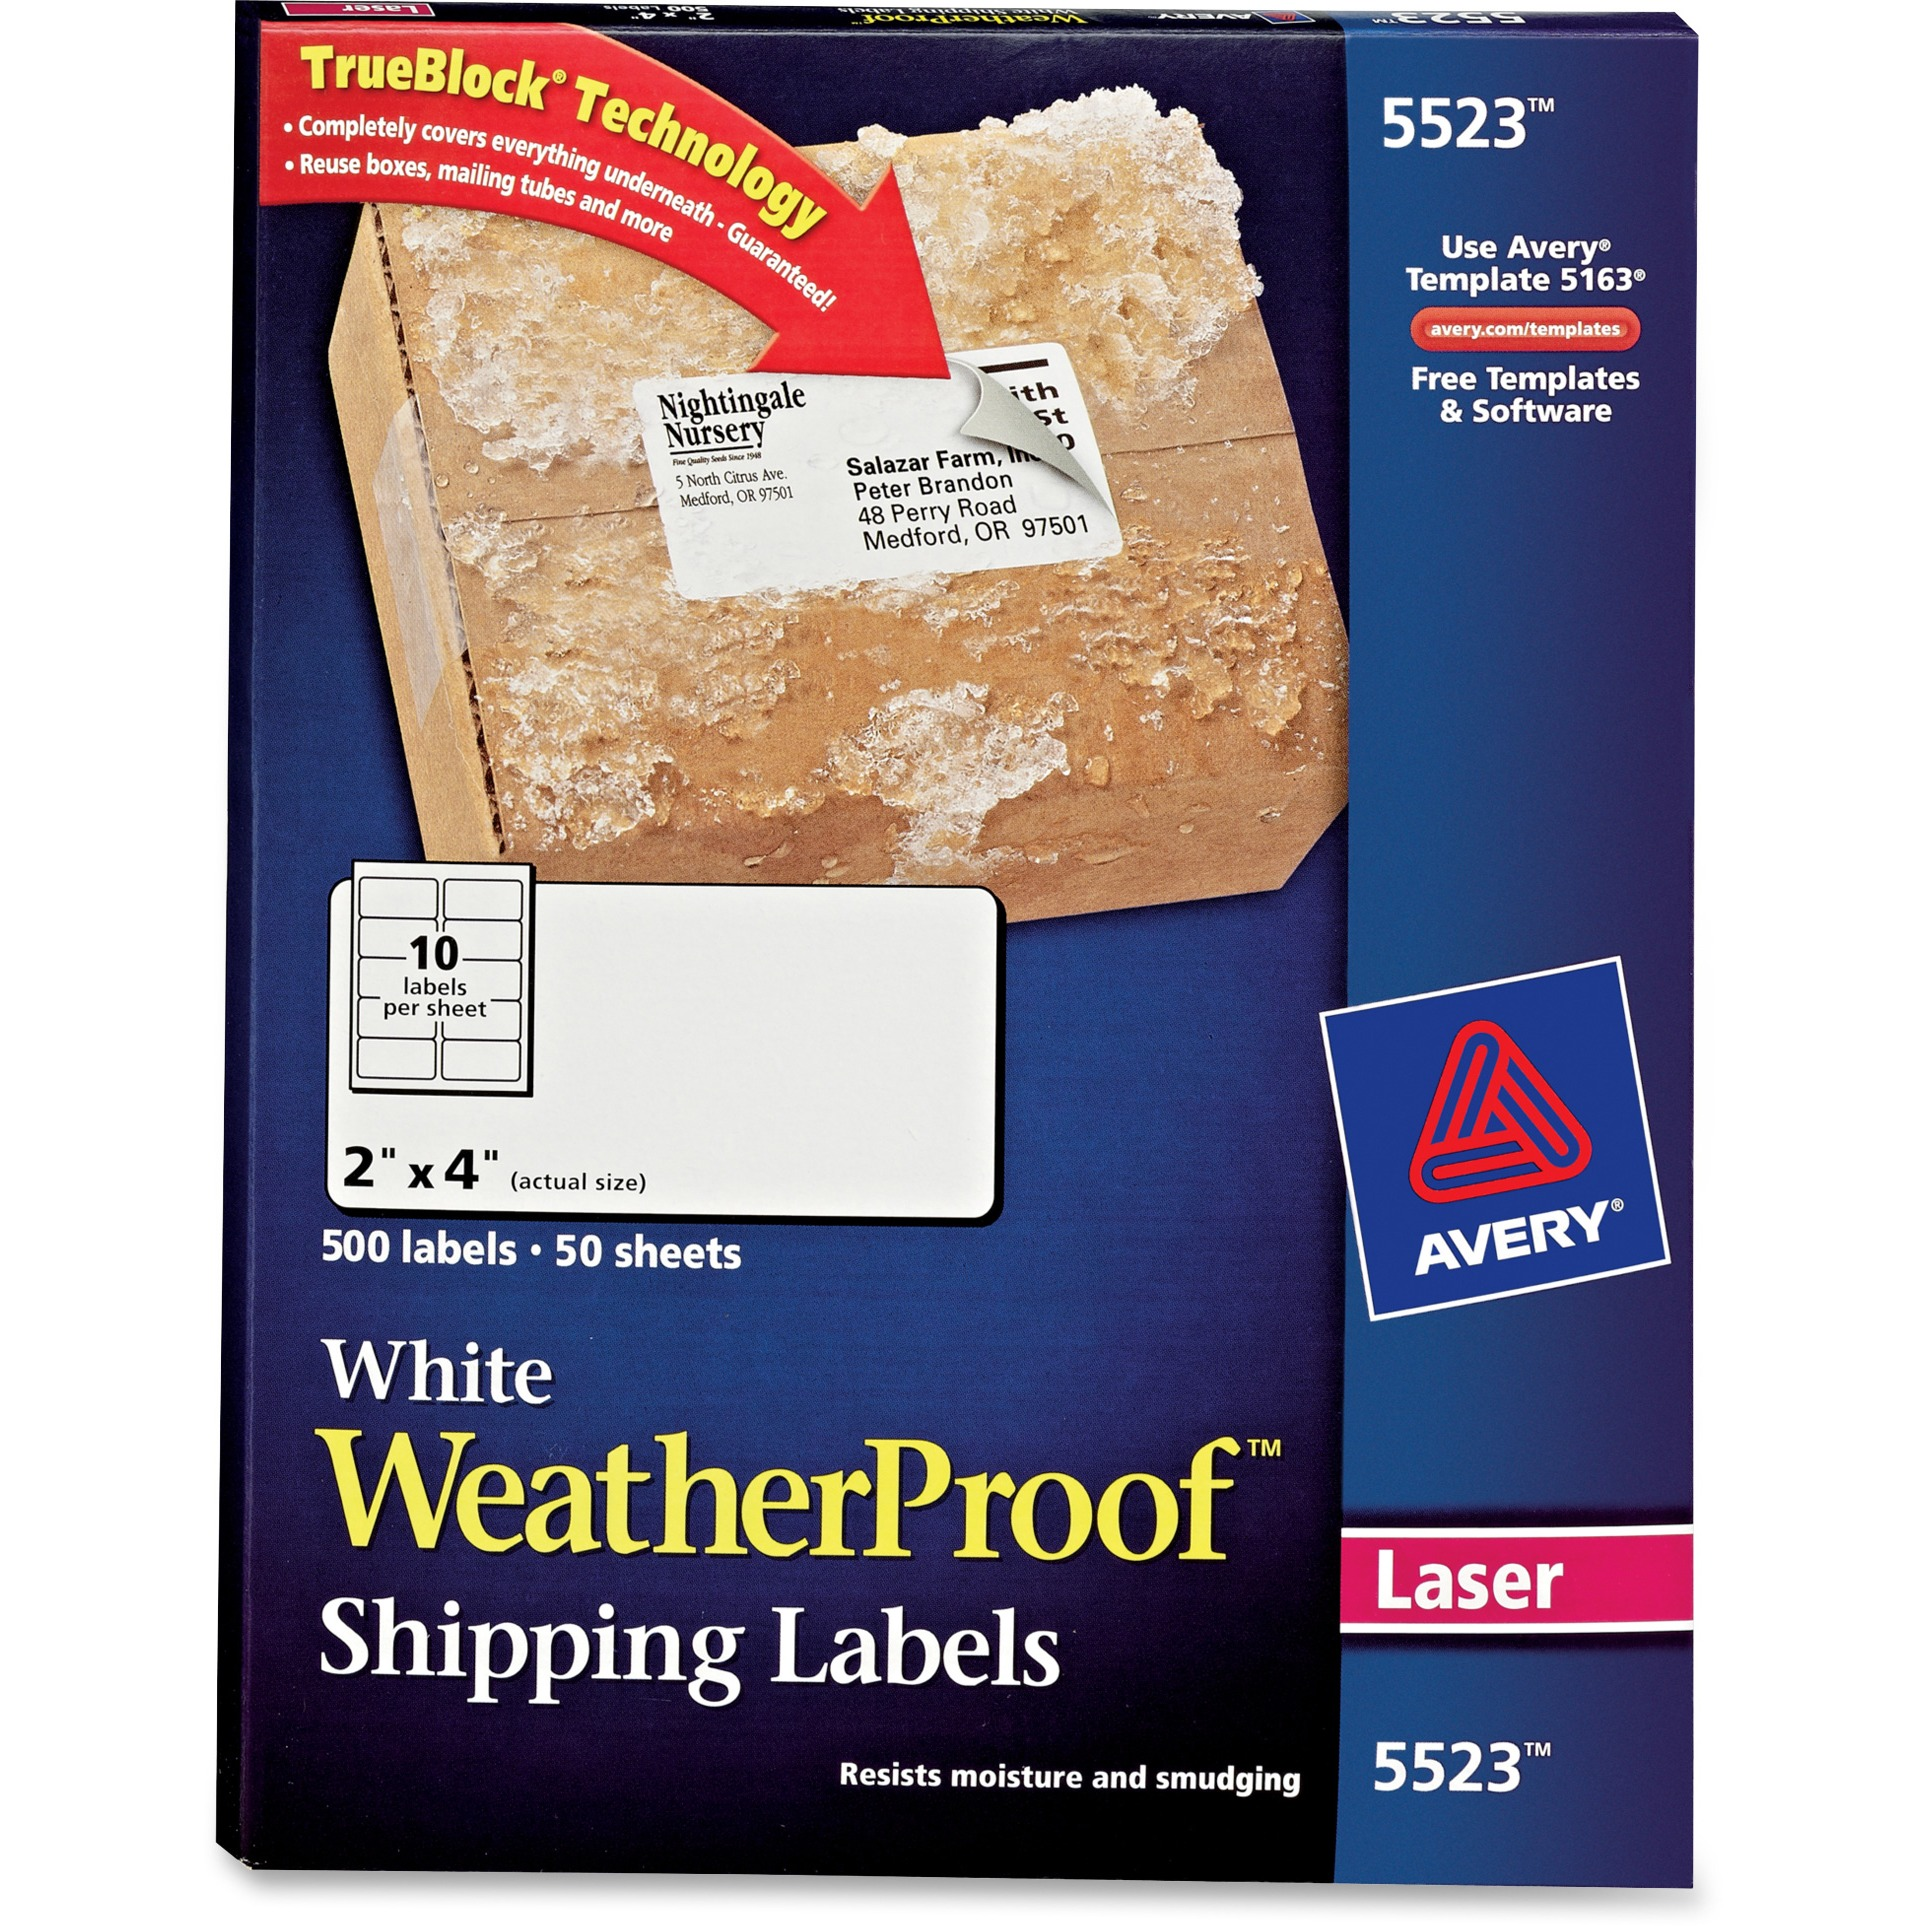 "Avery(R) WeatherProof(TM) Mailing Labels with TrueBlock(R) Technology for Laser Printers 5523, 2"" x 4"", Box of 500"